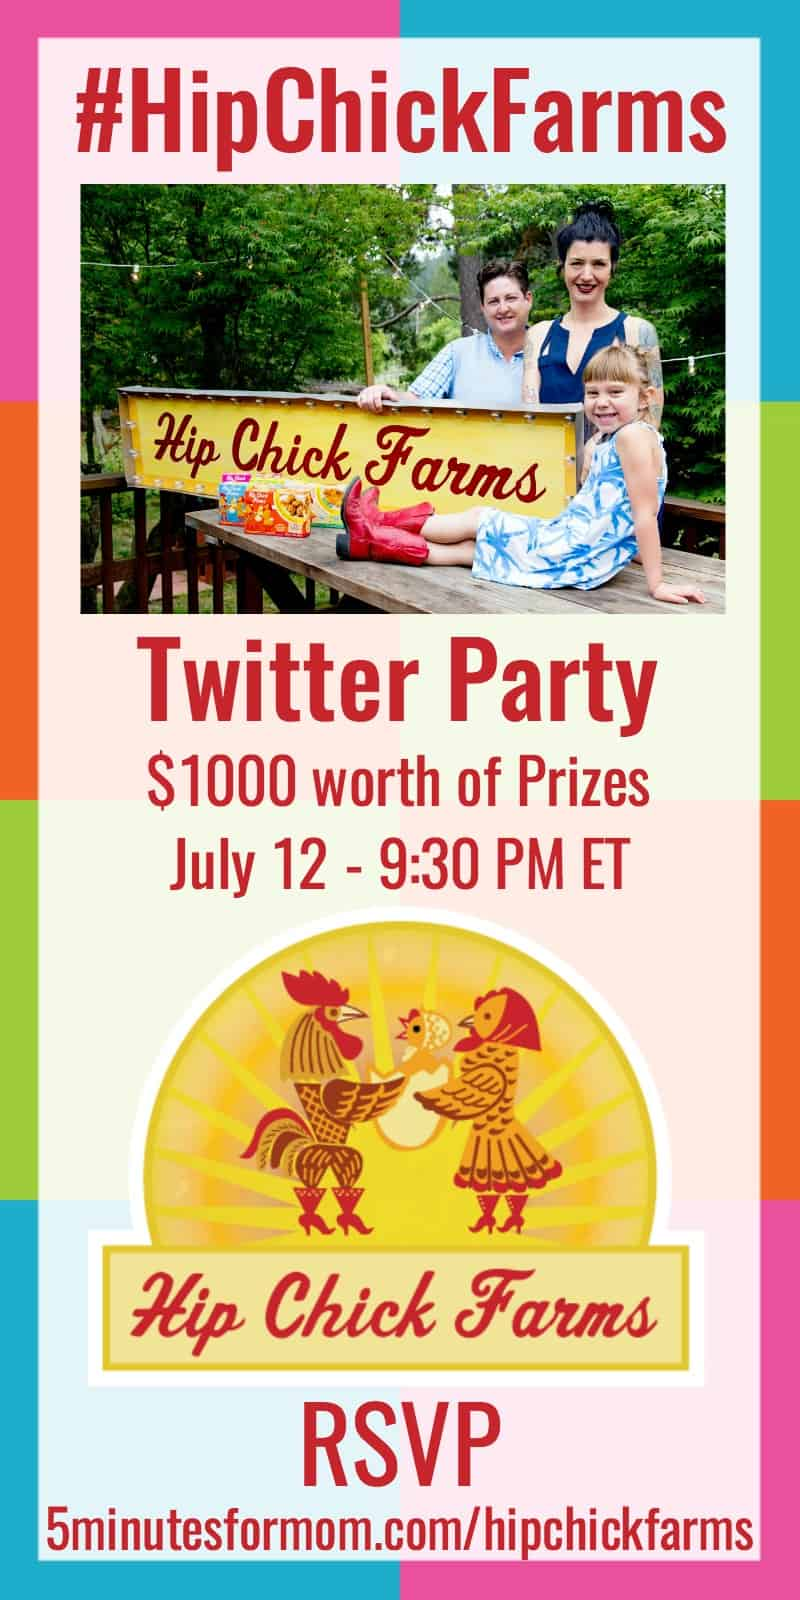 HipChickFarms Twitter Party Announcement